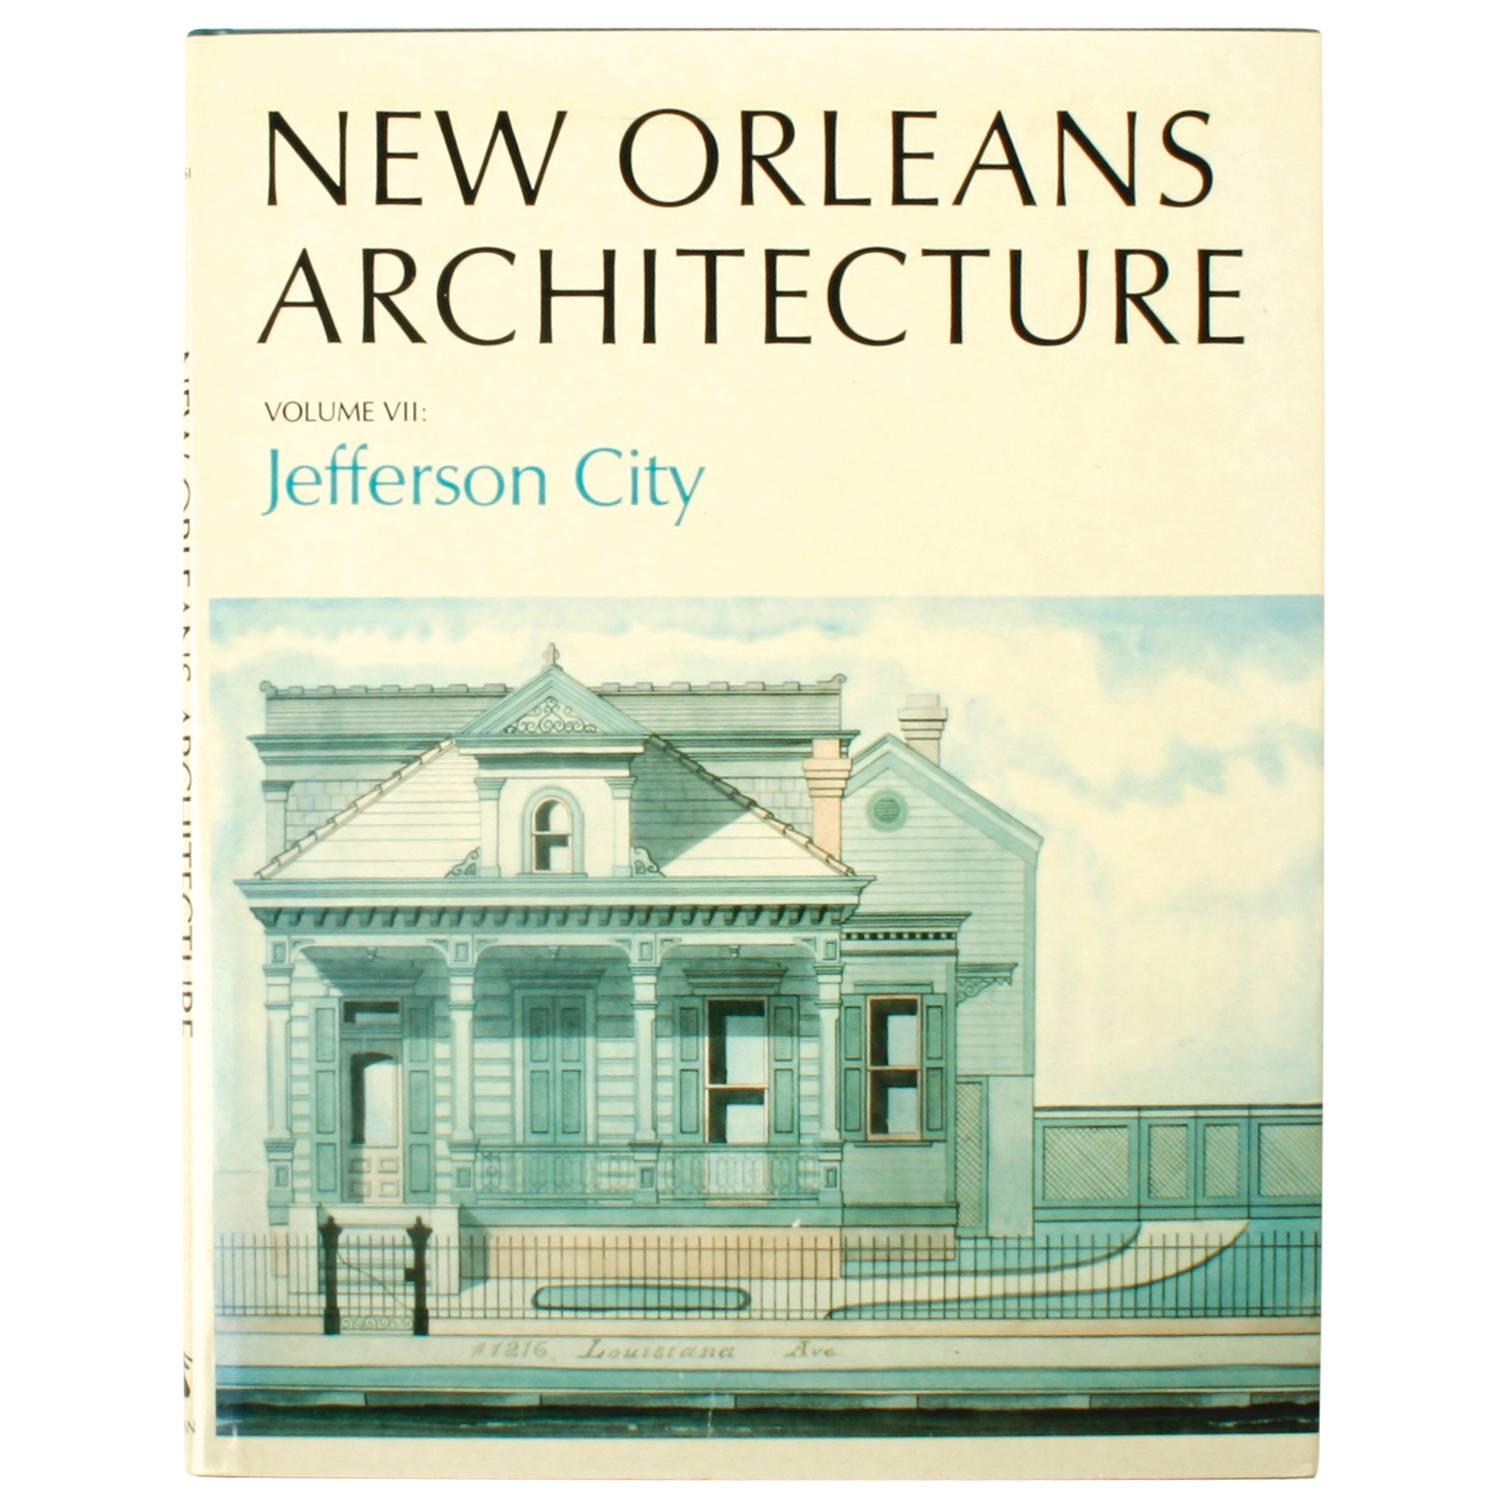 New Orleans Architecture Vol. VII Jefferson City, First Edition